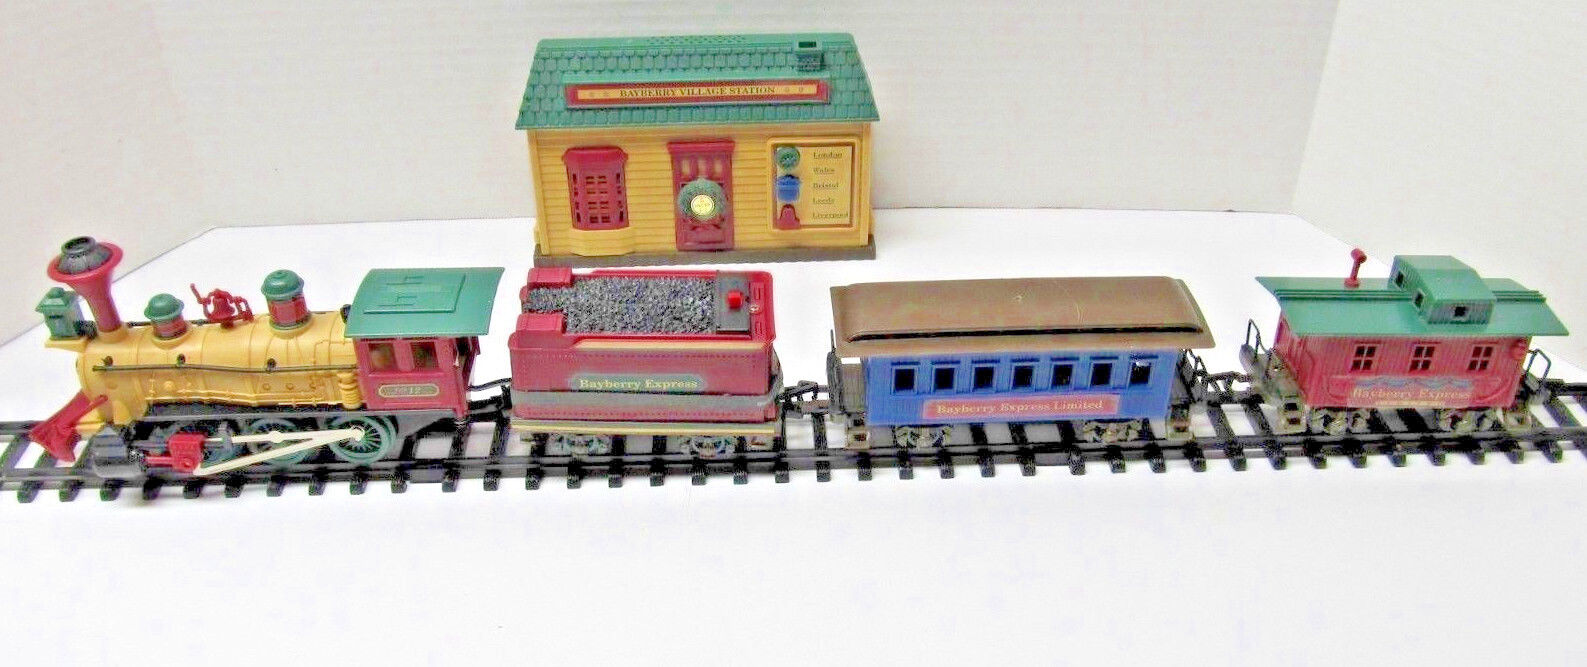 1997's Christmas Set - HO Gauge - Bayberry Express Limited - working item (438)